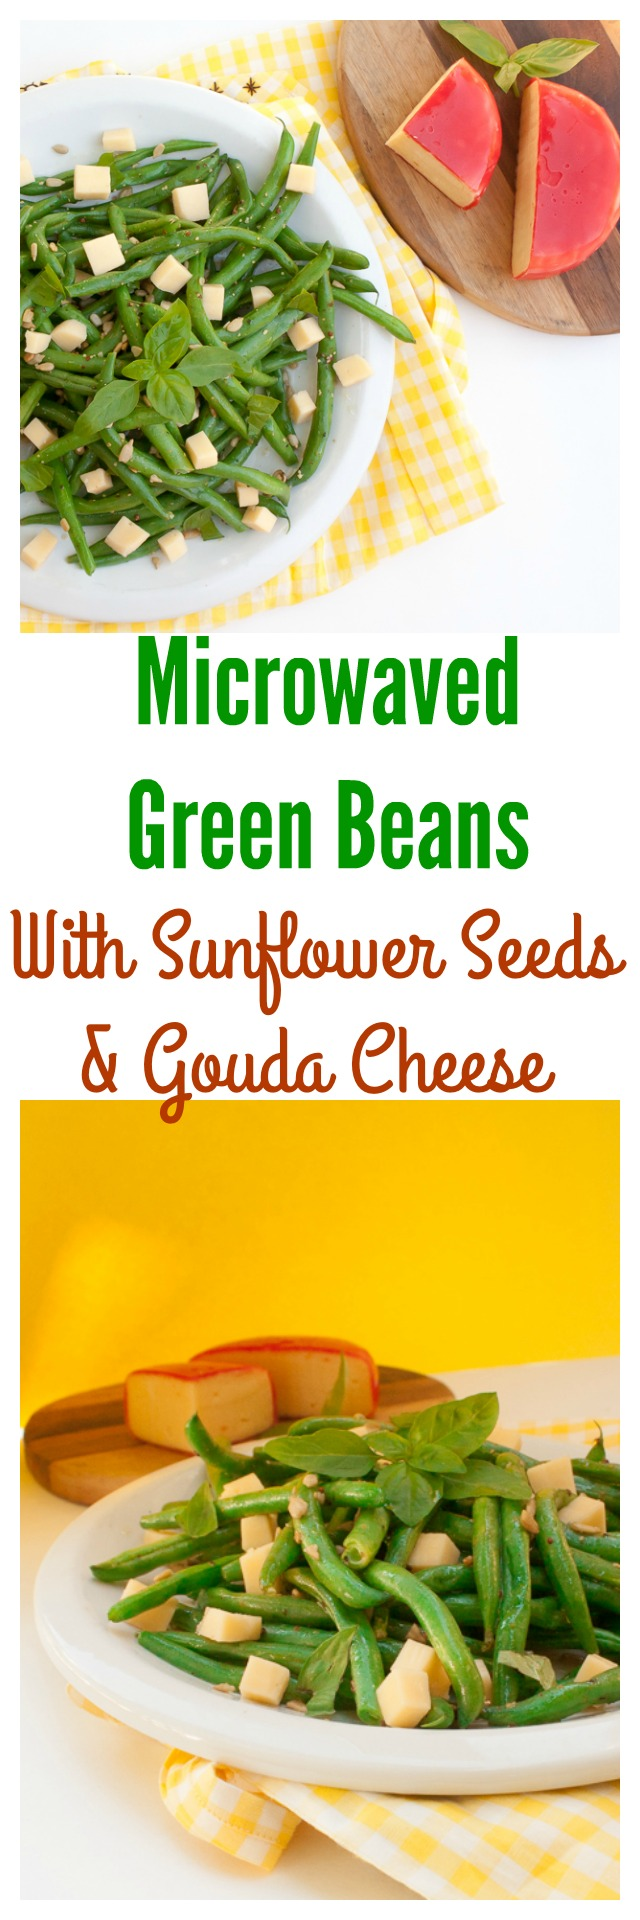 The best way to make tender-crisp green beans: Microwave them! MICROWAVED GREEN BEANS WITH SUNFLOWER SEEDS & GOUDA CHEESE | @TspCurry